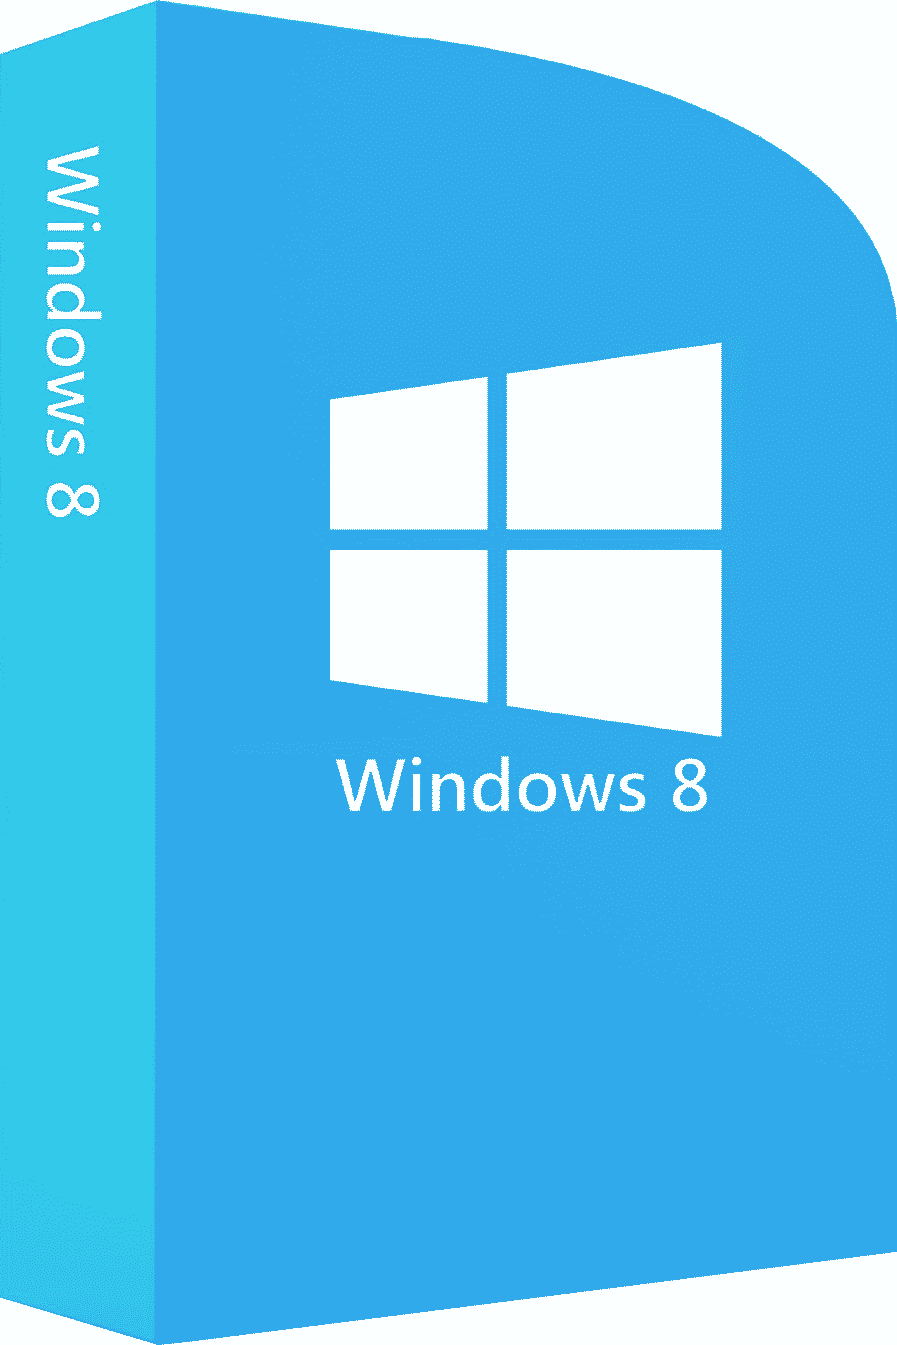 Windows 8 FINAL Todo En Uno (32 y 64 Bits) Con Activado...